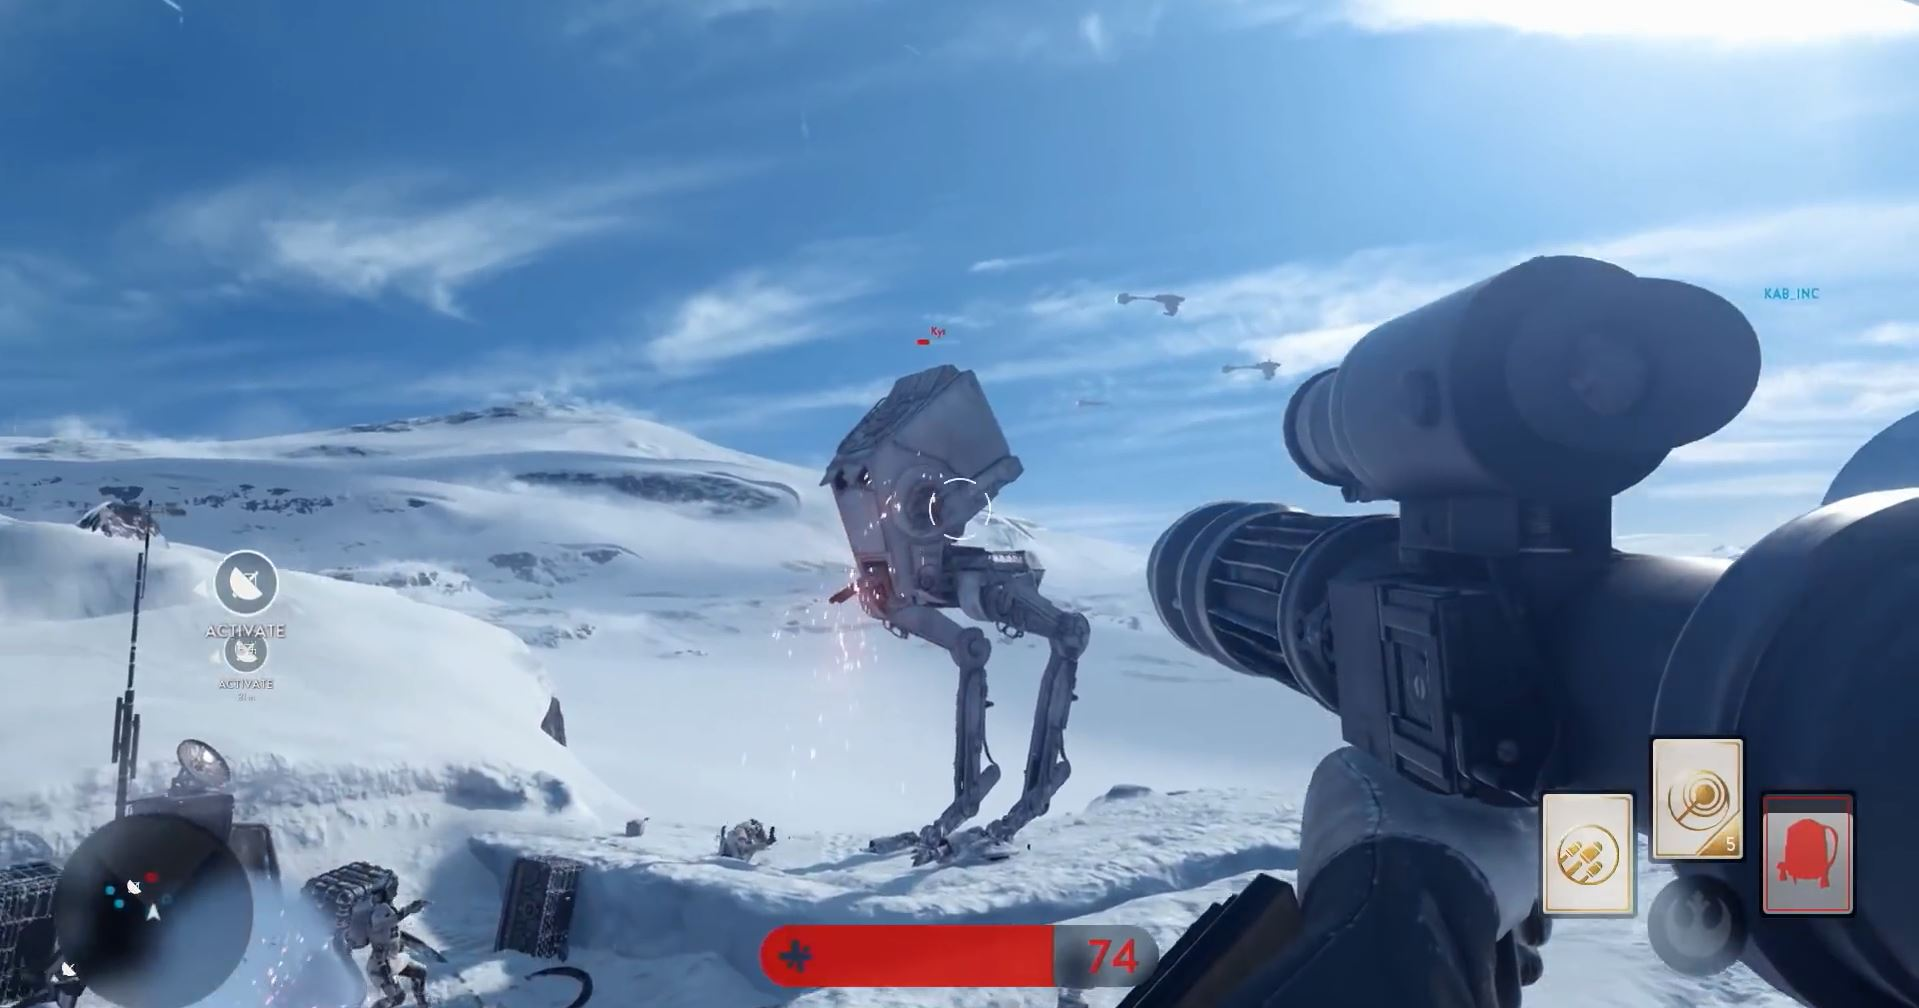 Rocket launcher on AT-ST - Star Wars Battlefront Preview